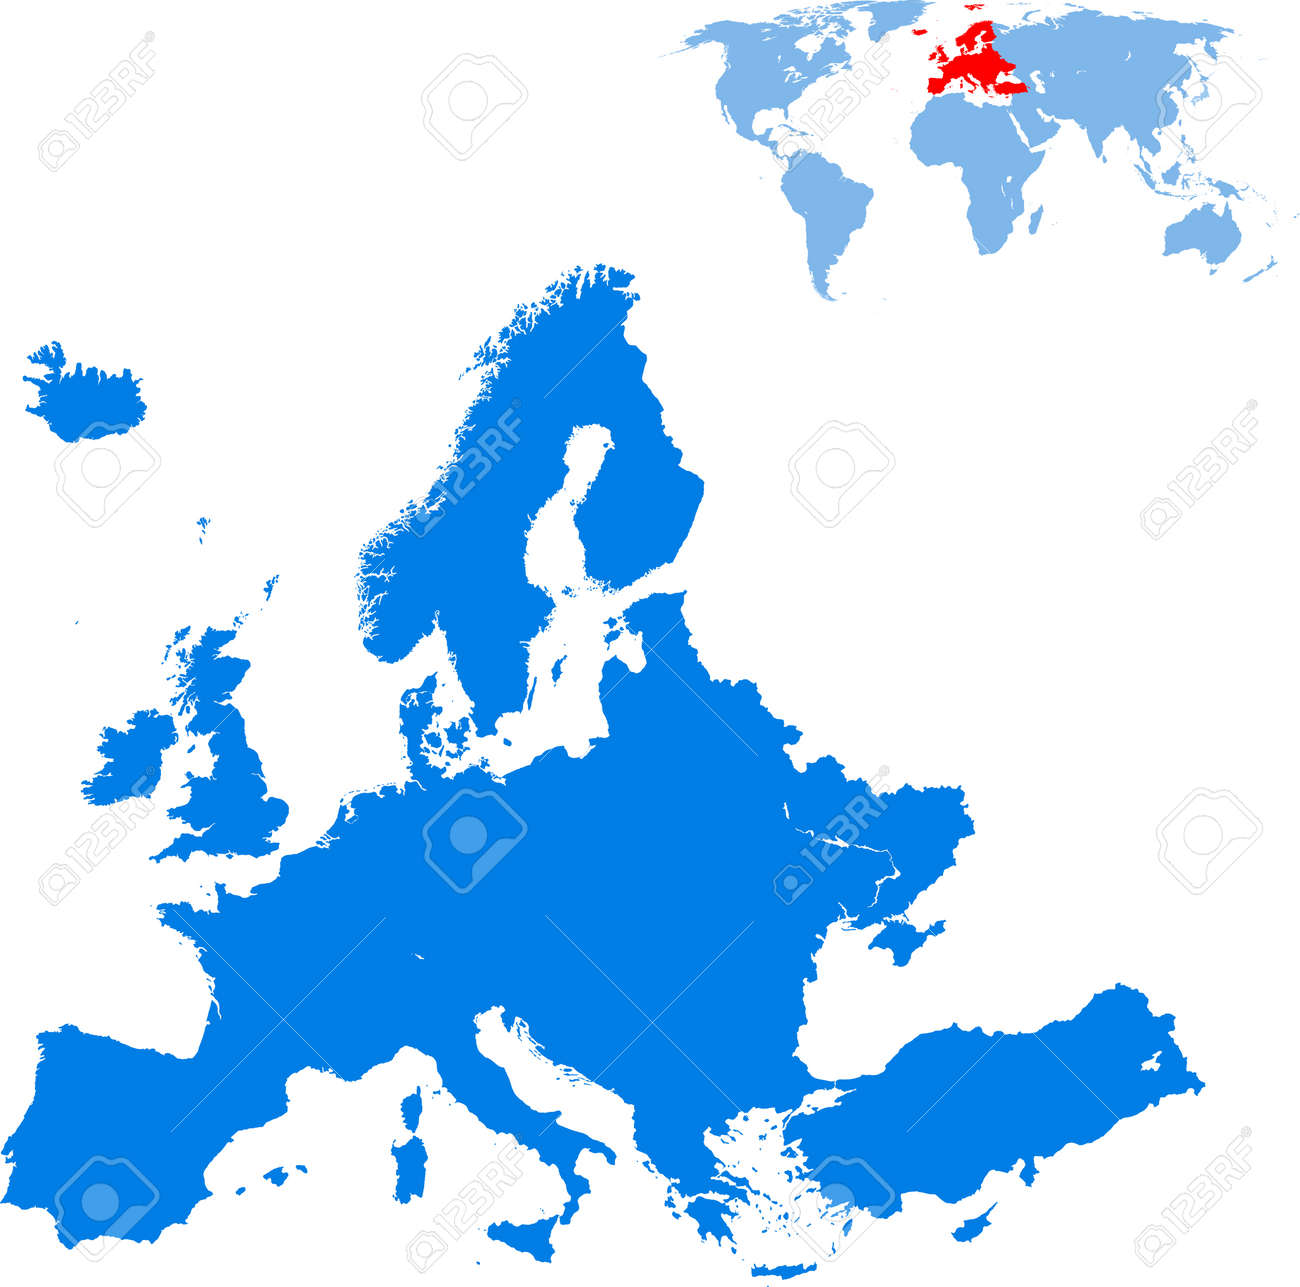 map of Europe - 158556363